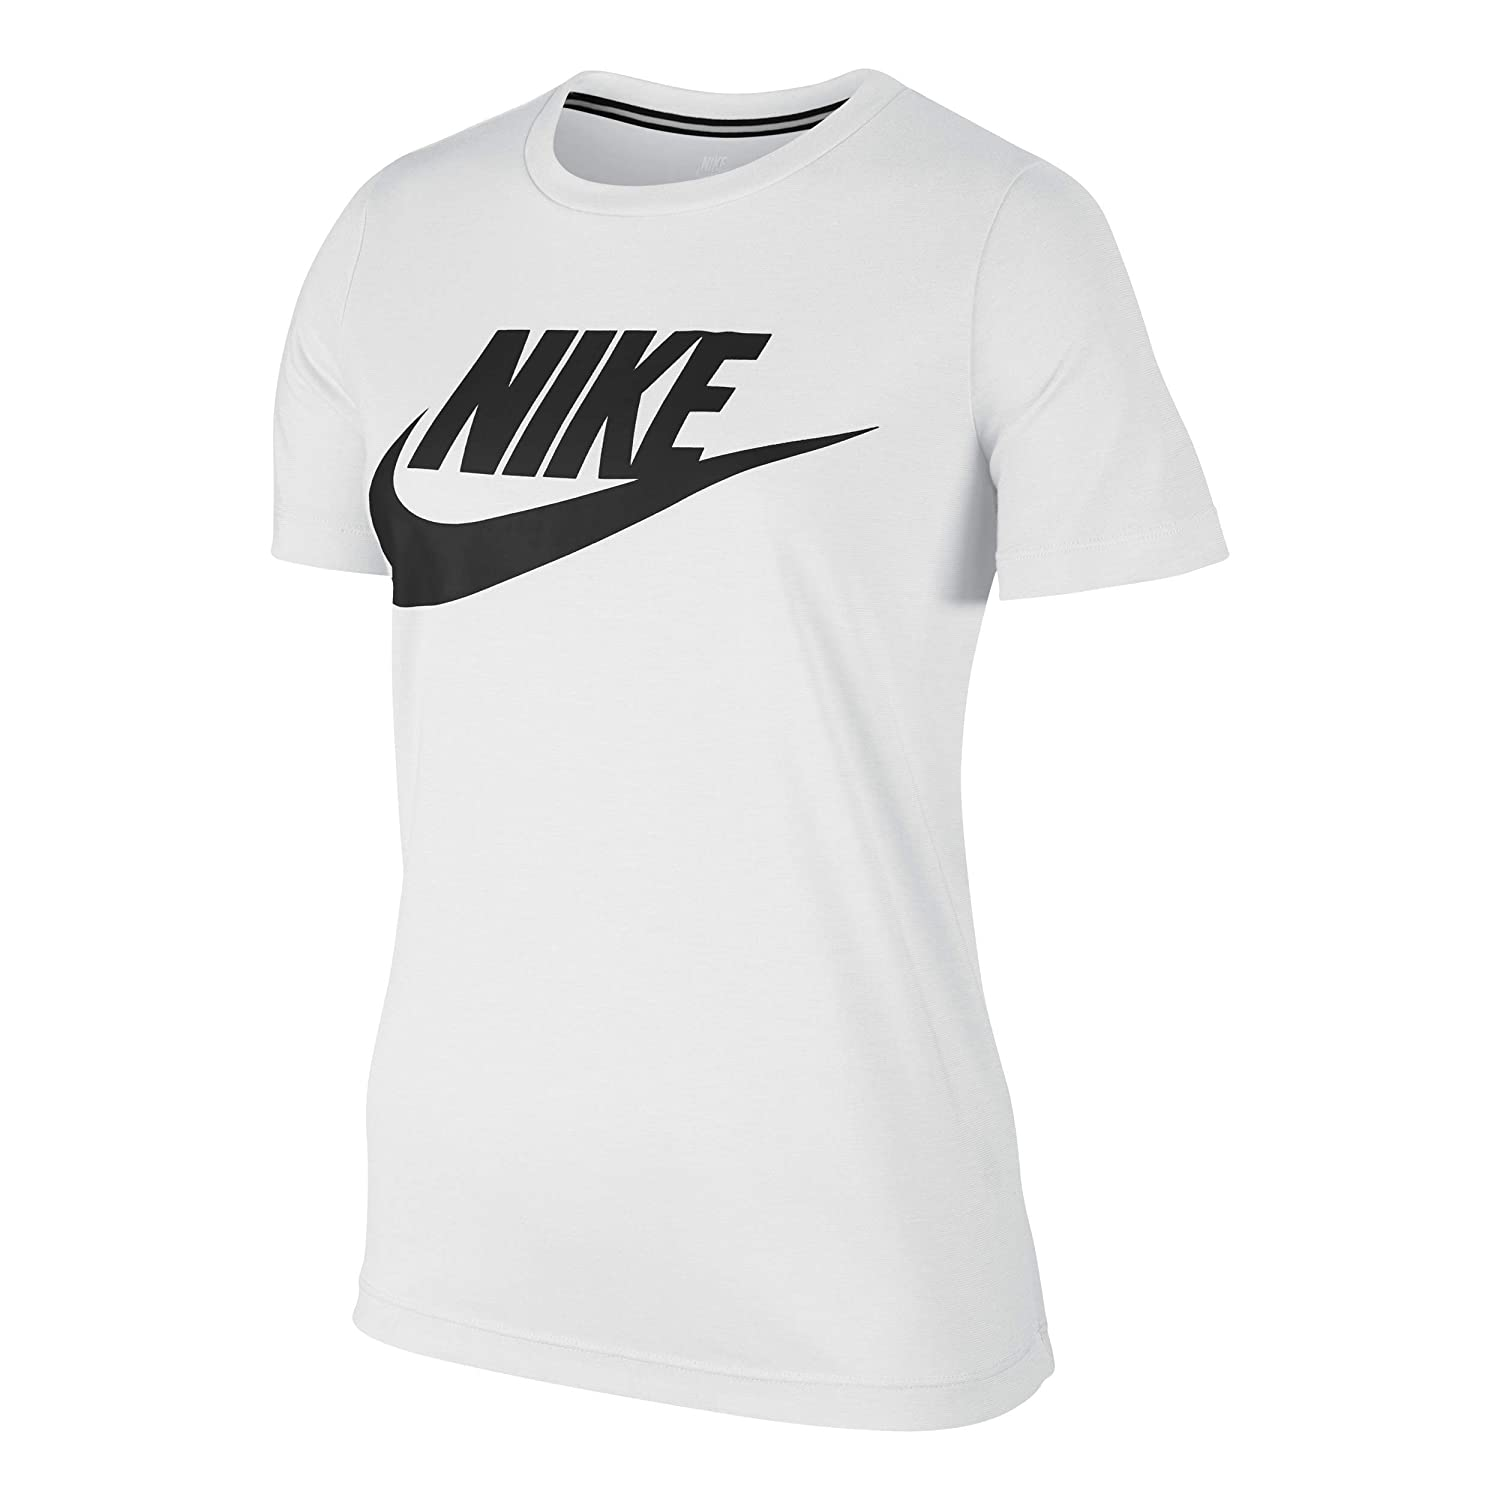 5ff7917d4 Amazon.com: Nike Essential T-shirt Womens Style: Clothing